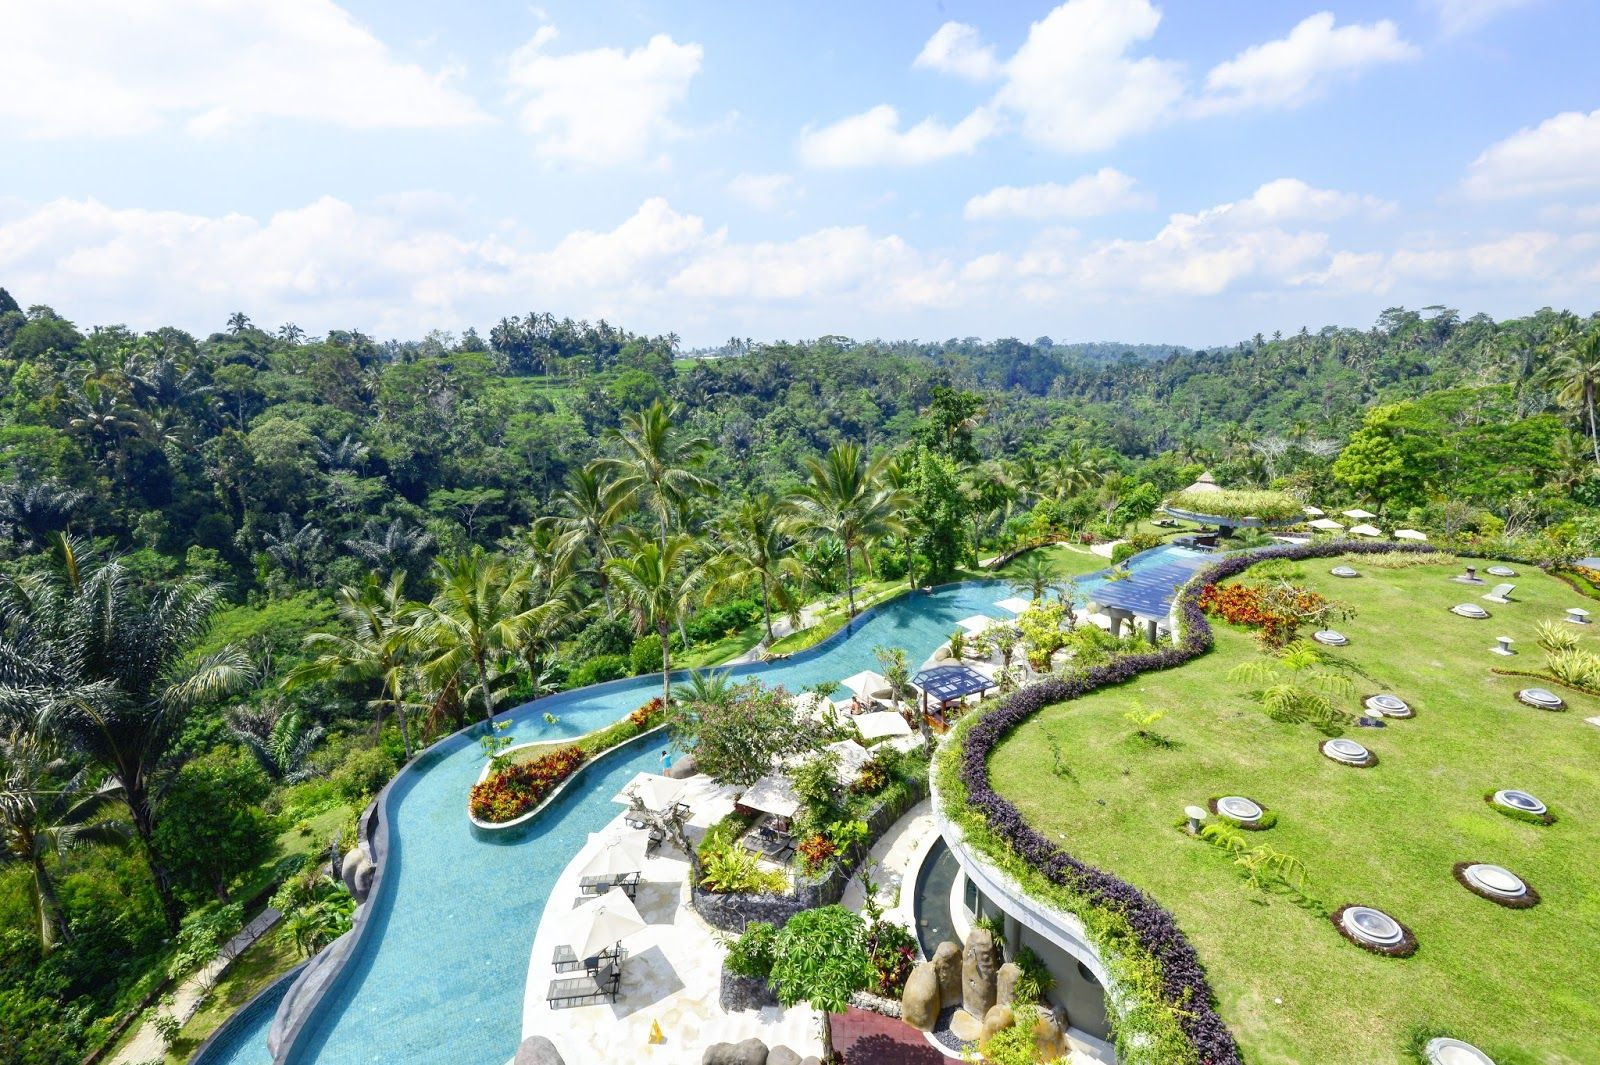 Padma Resort Ubud Padma Resort Ubud